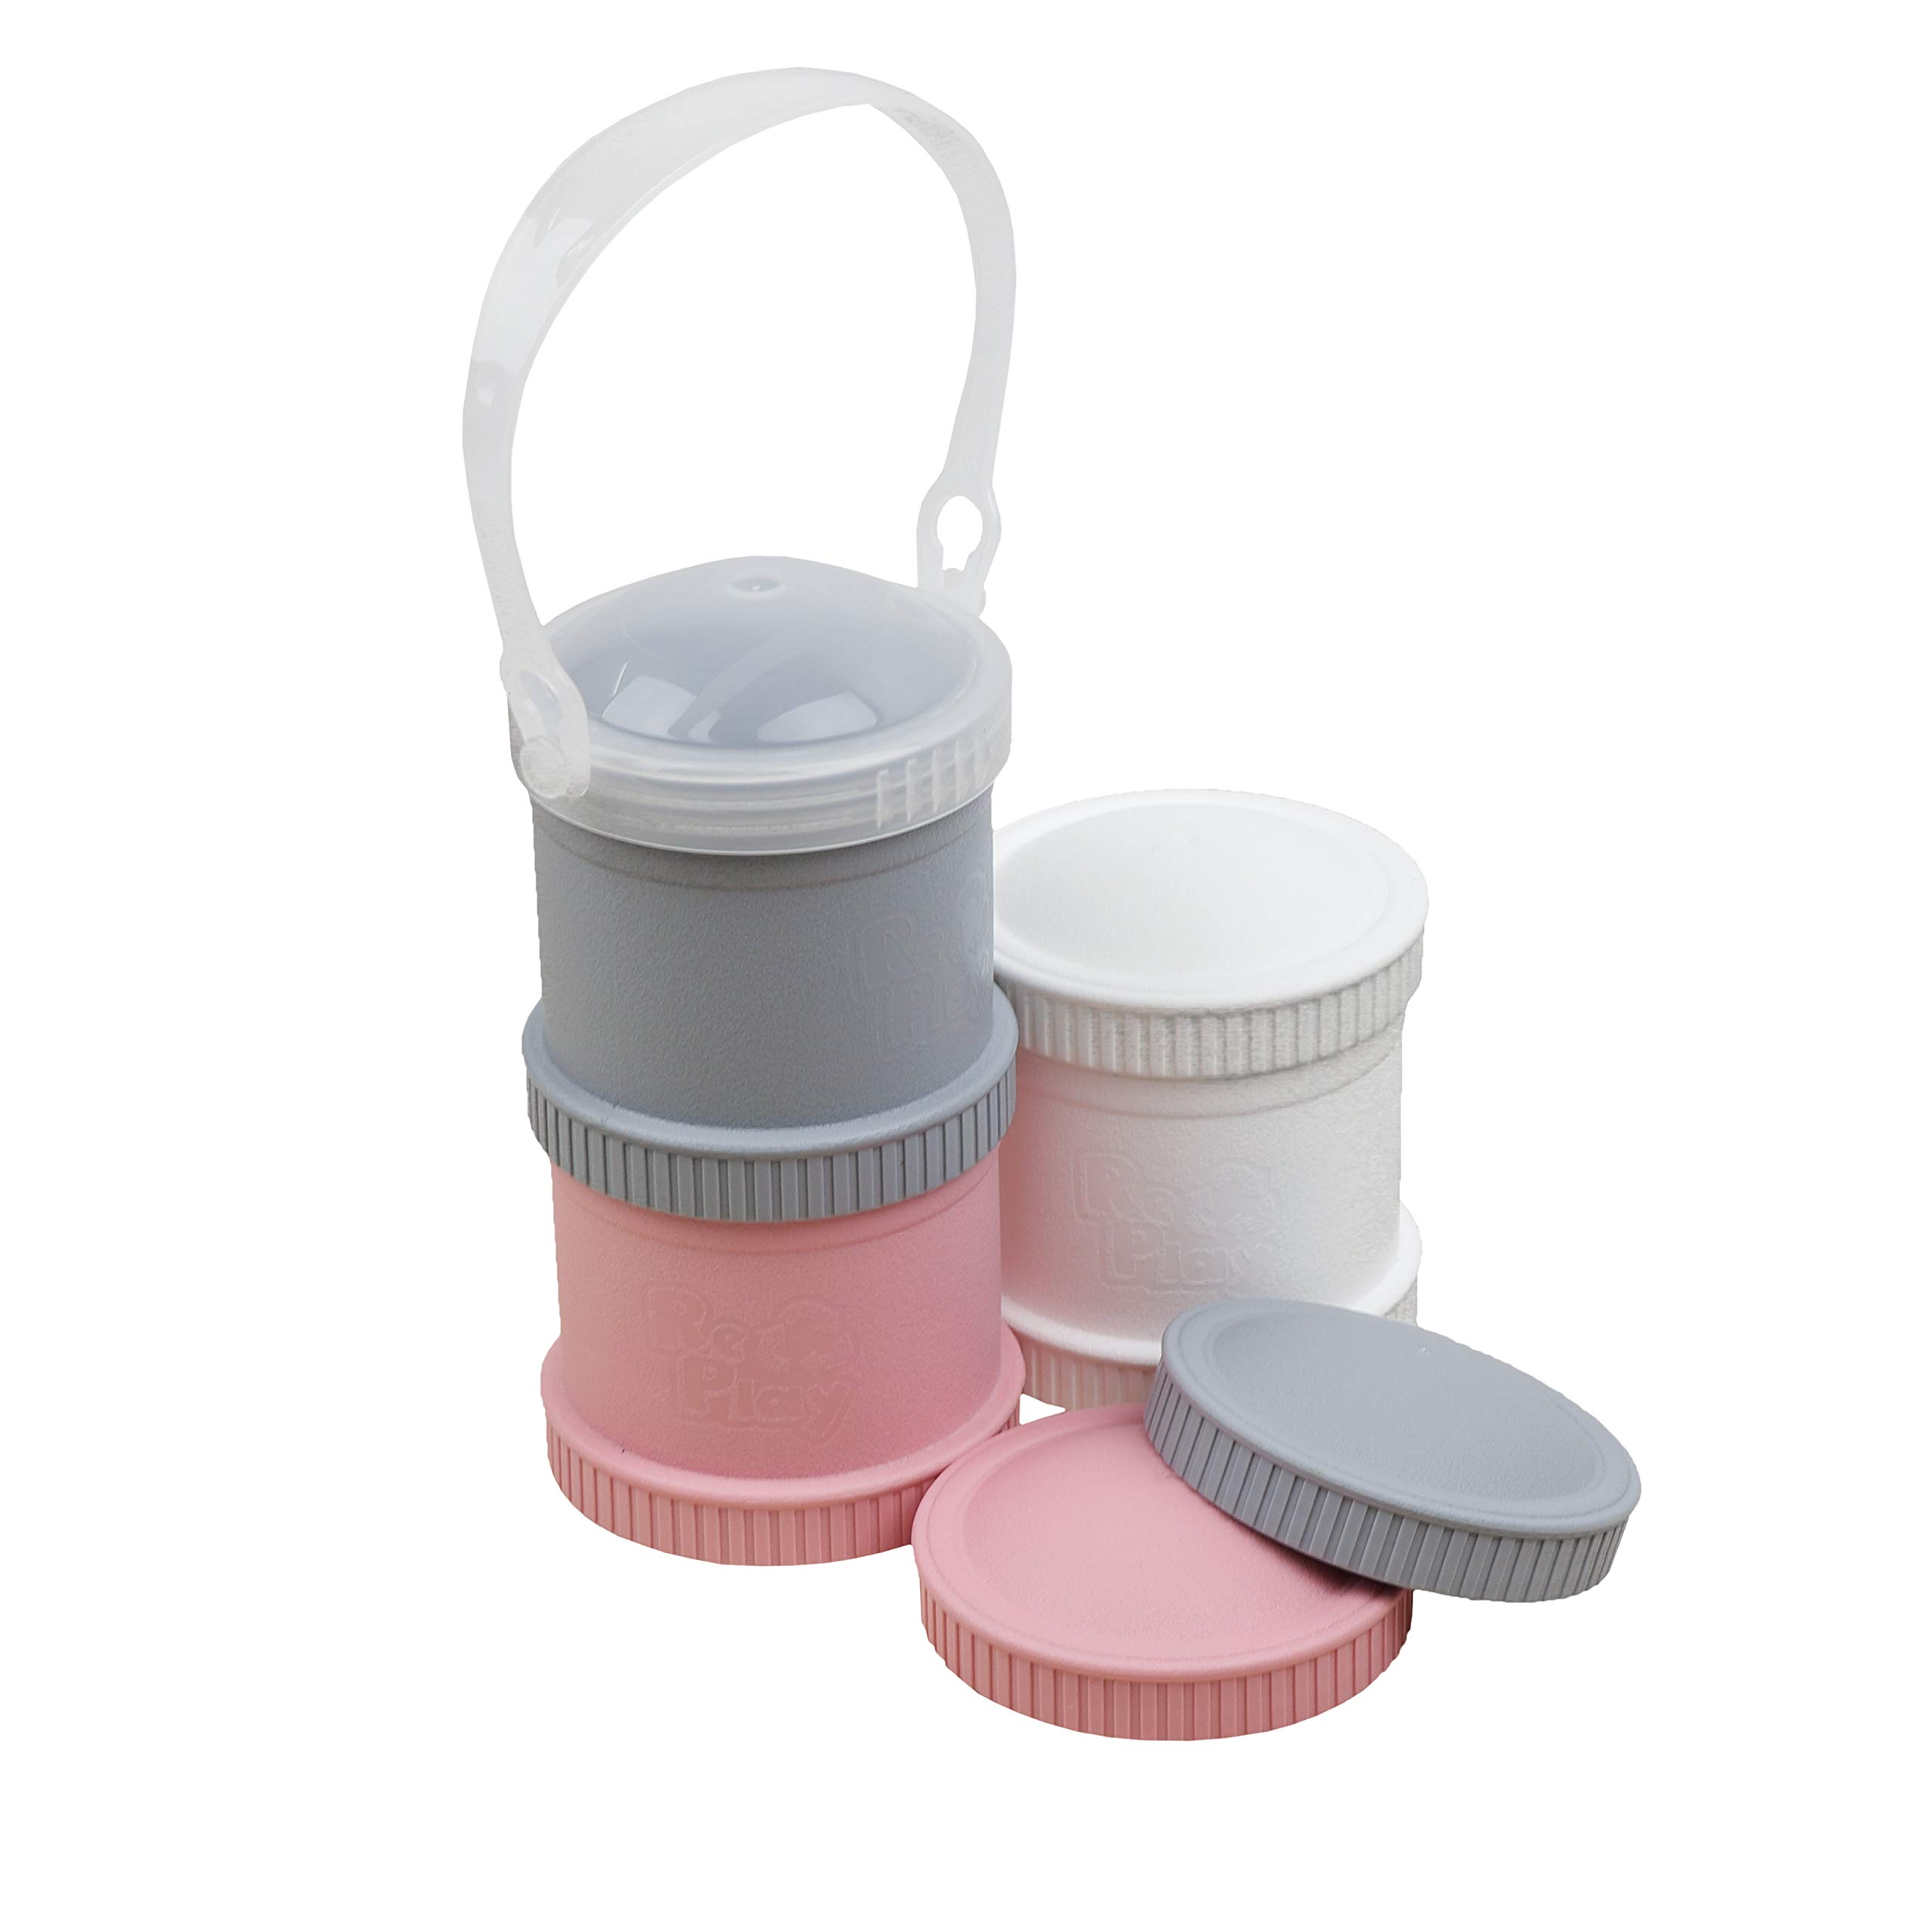 Re-Play Made in The USA 7 Piece Stackable Food and Snack Storage Containers for Babies, Toddlers and Kids of All Ages (Modern Pink)